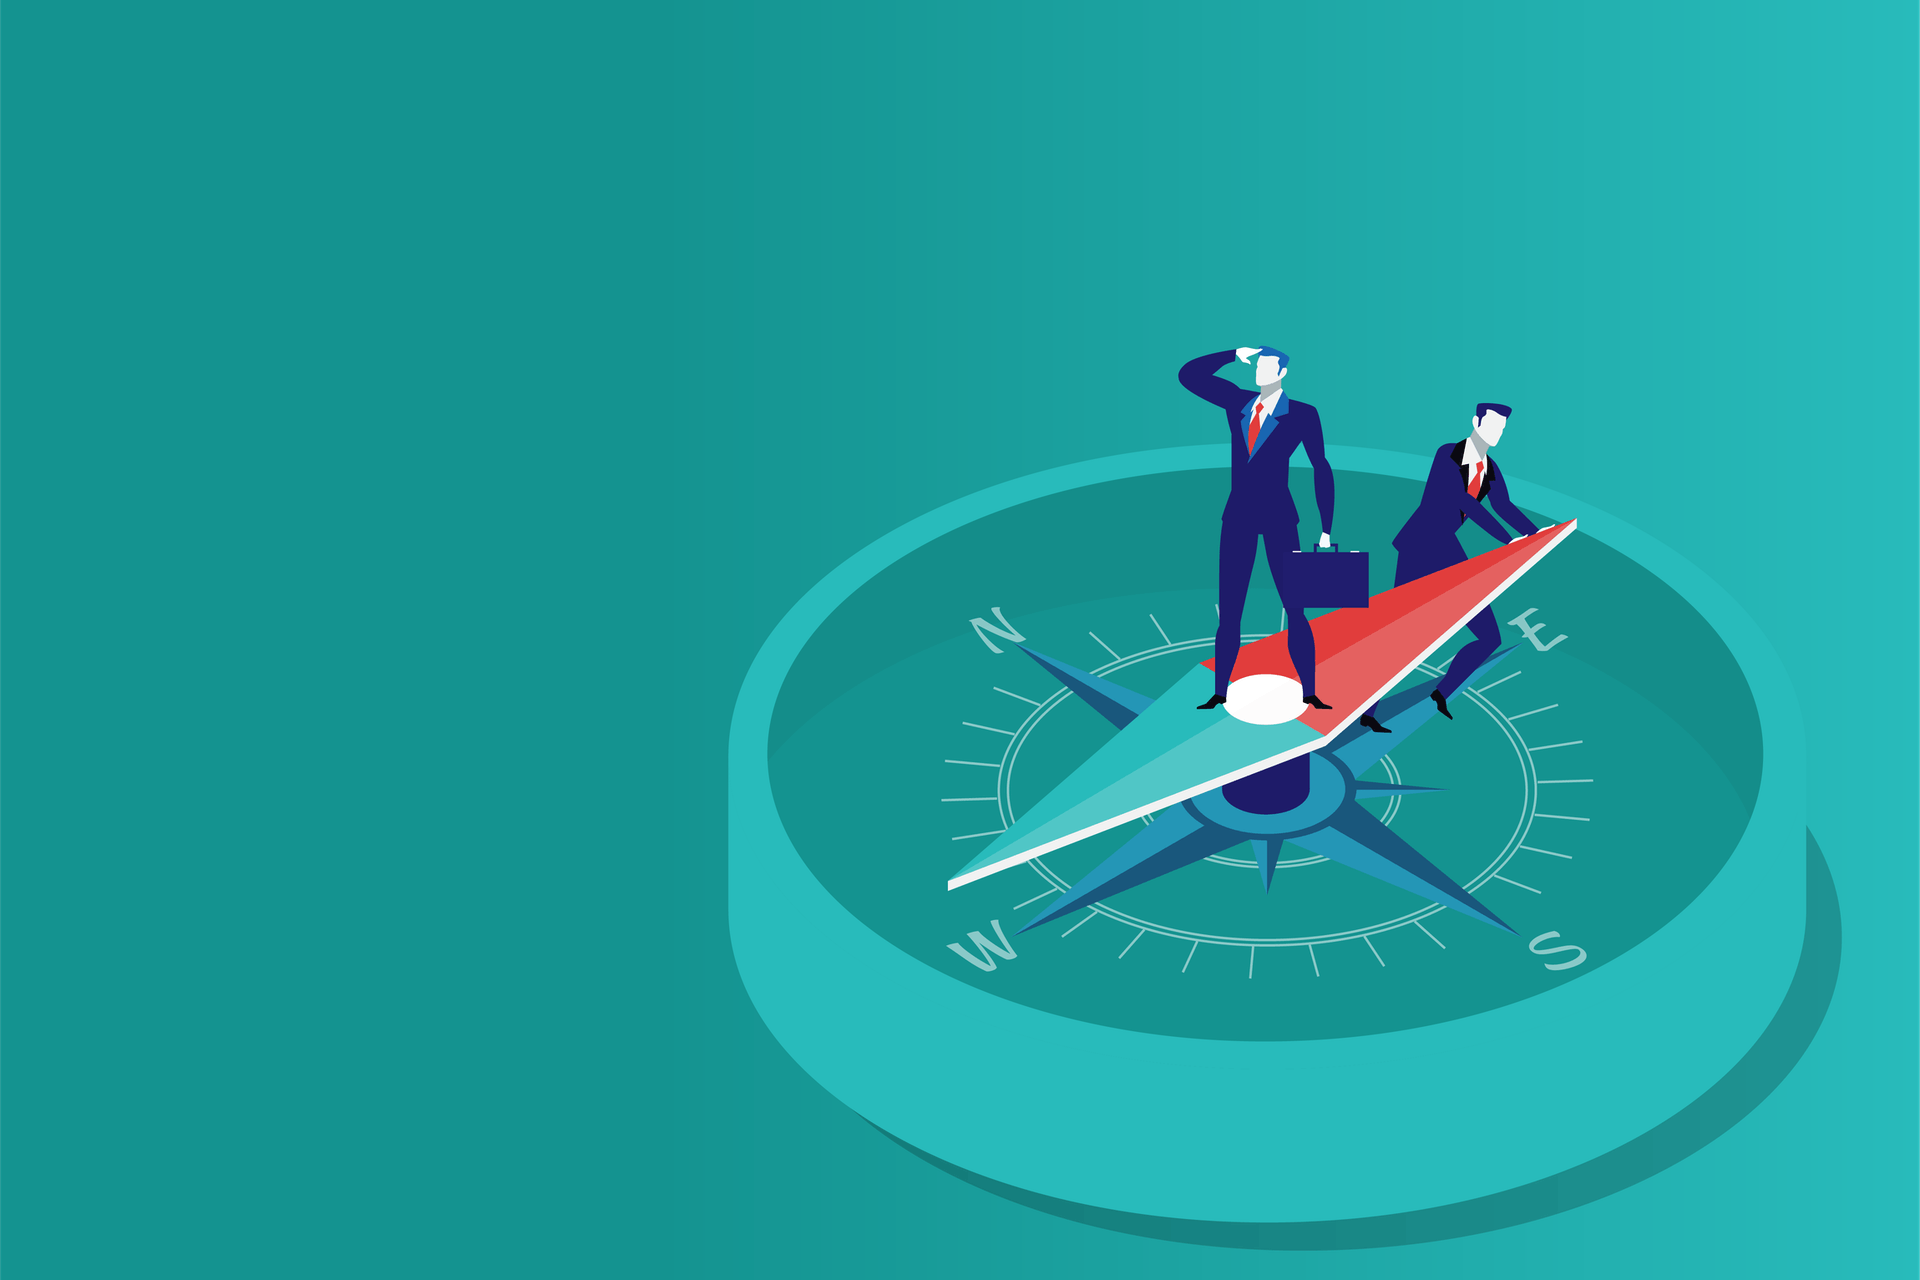 Illustration of two businessmen standing on a compass against a teal background